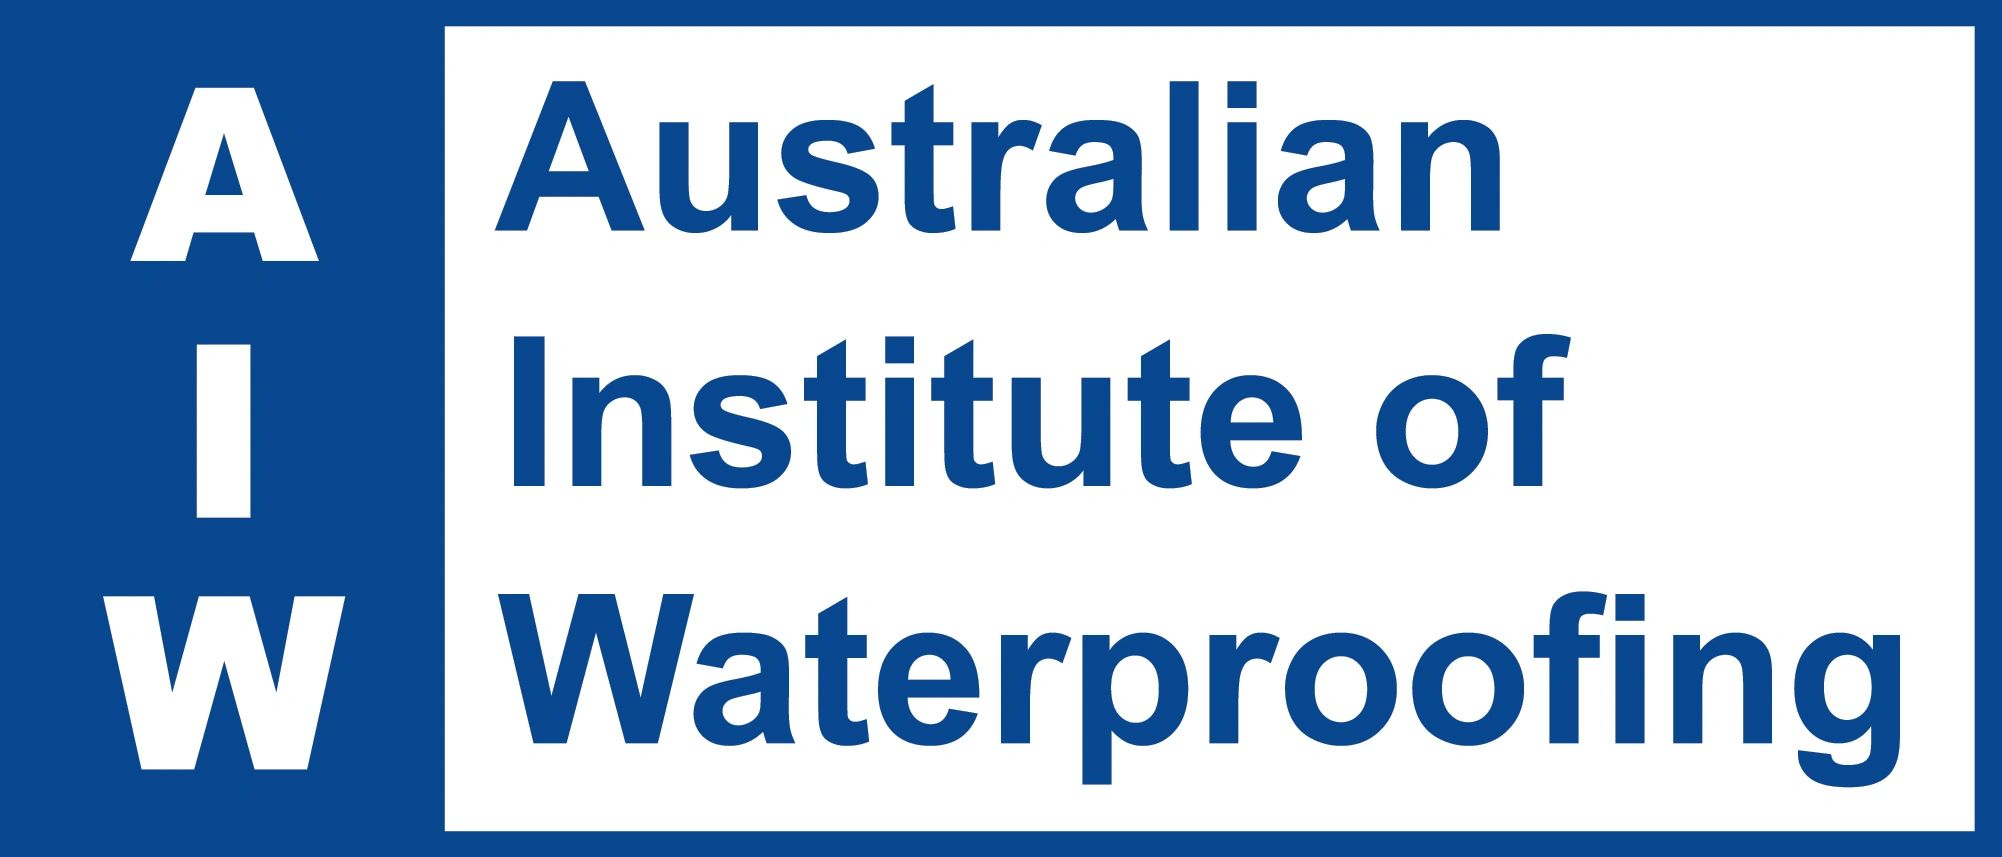 Australian Institute of Waterproofing www.waterpoof.org.au